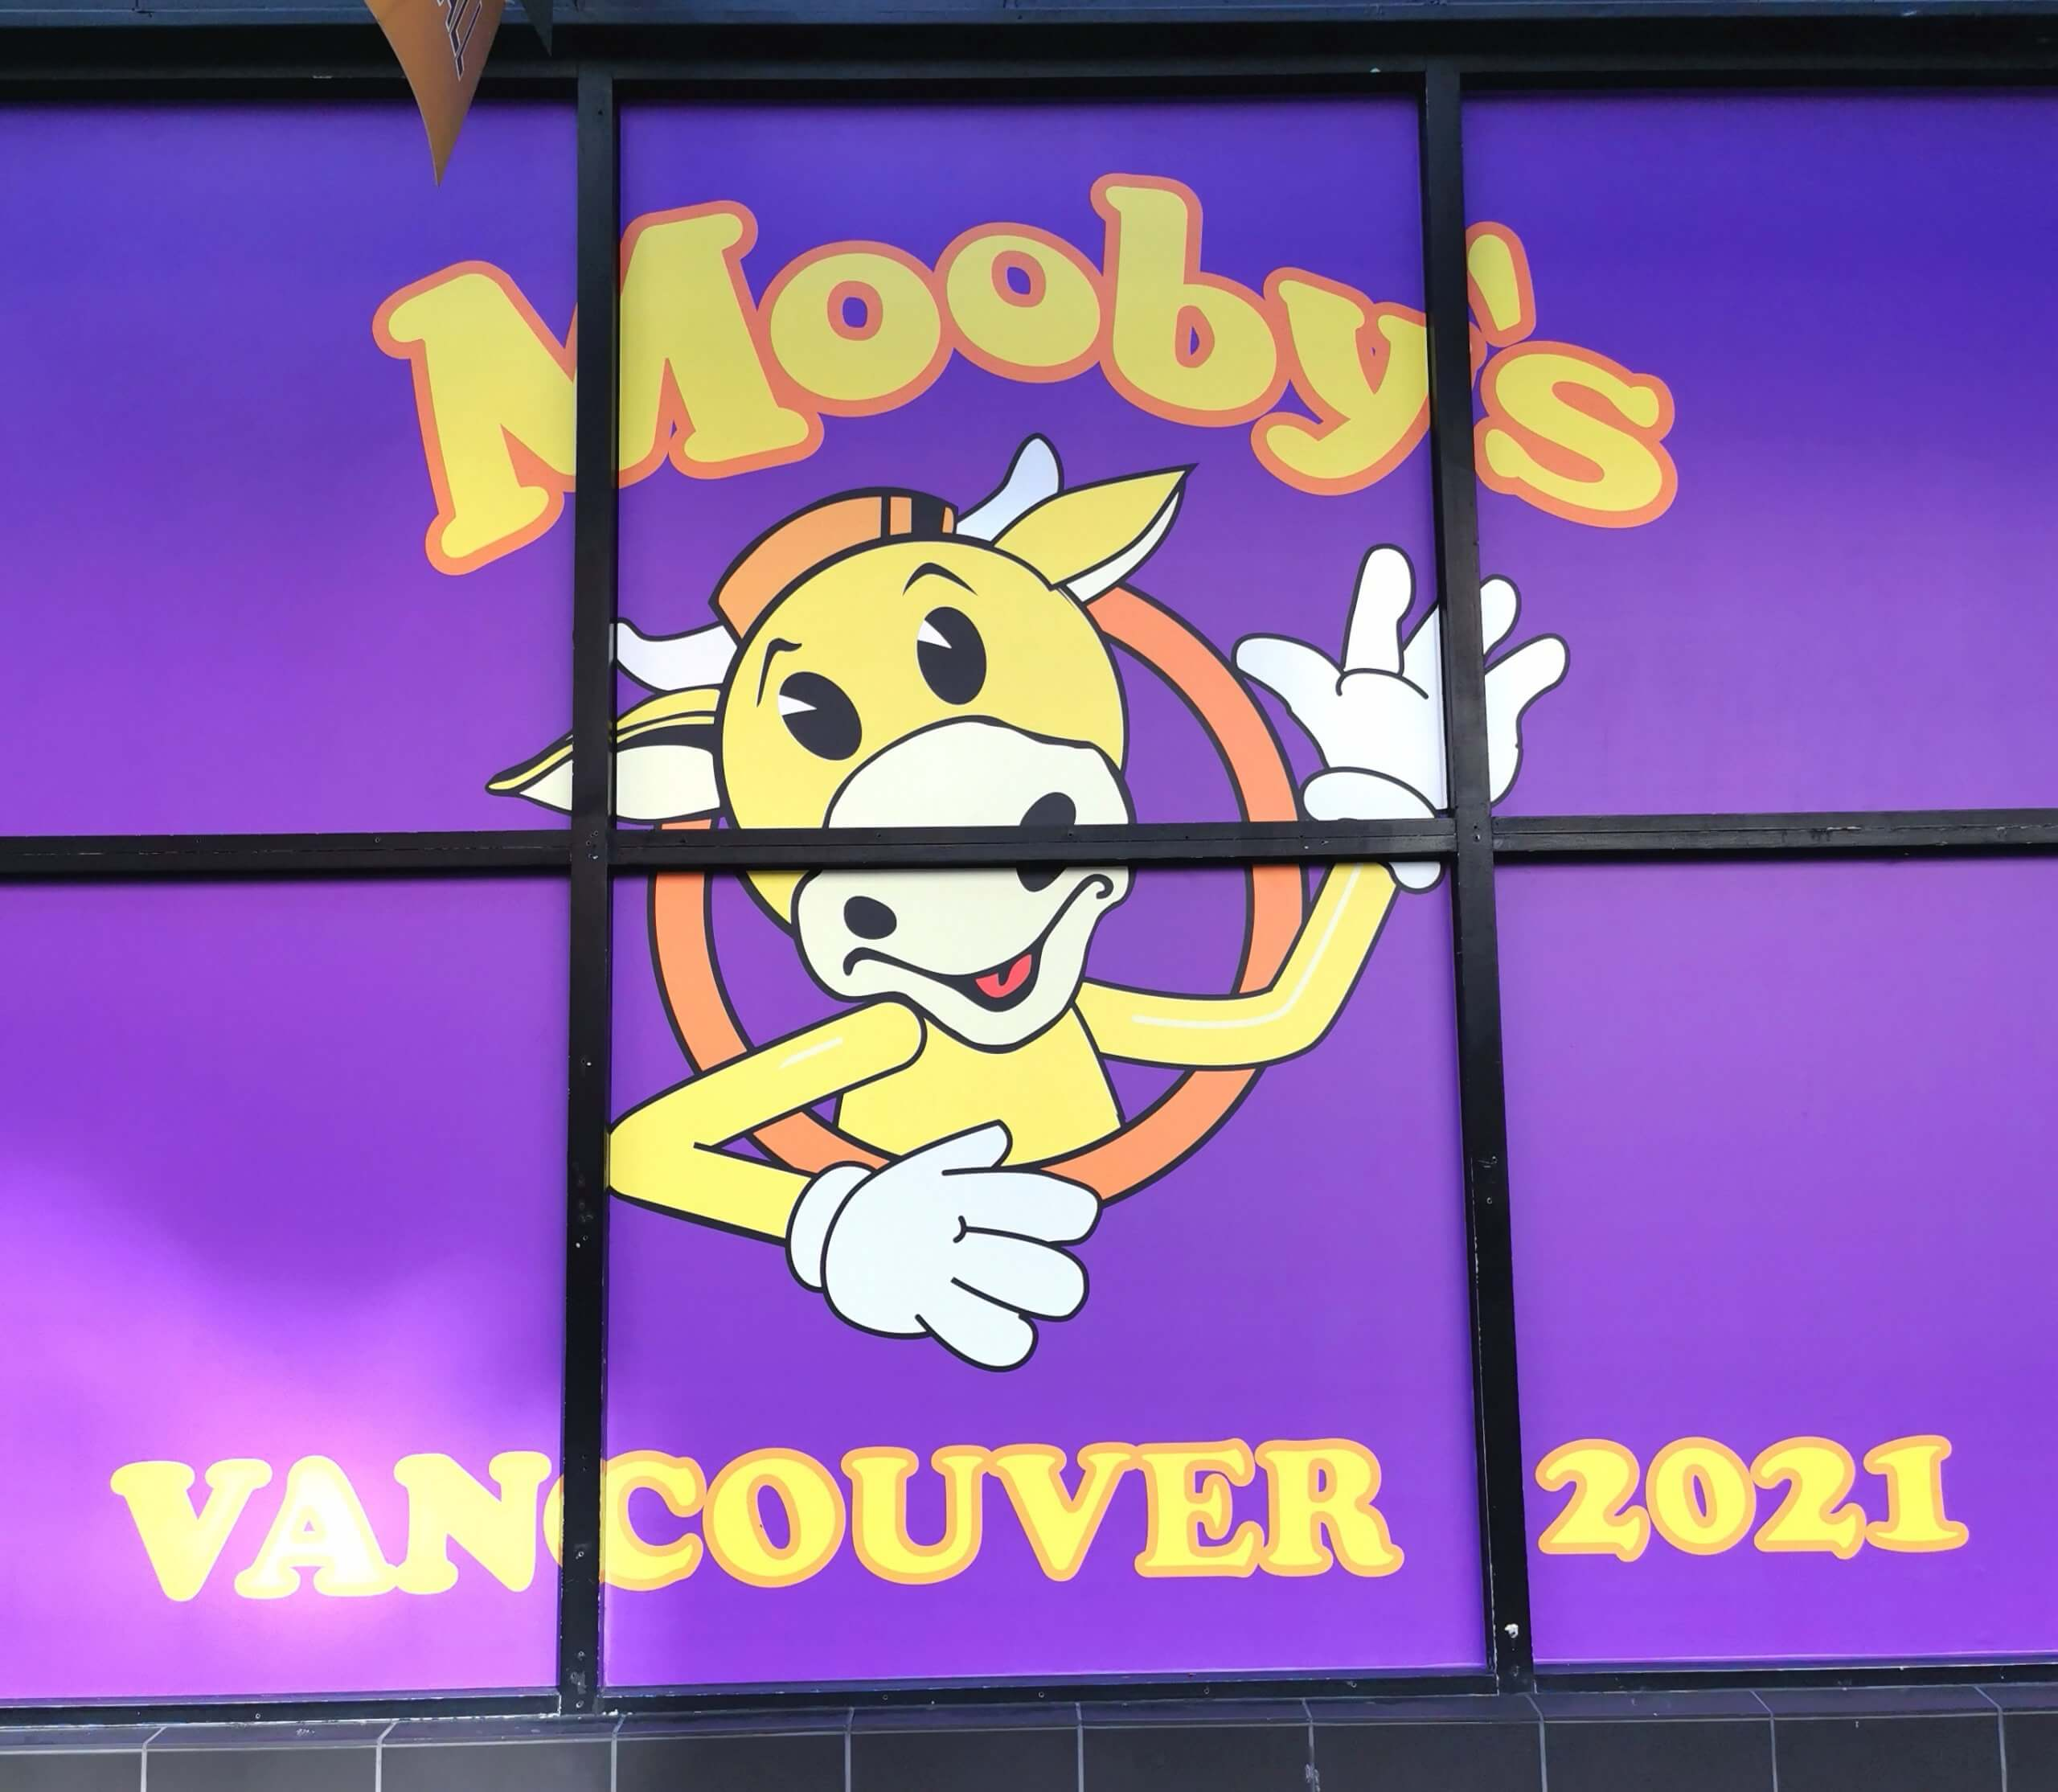 Mooby's Vancouver 2021 Sign